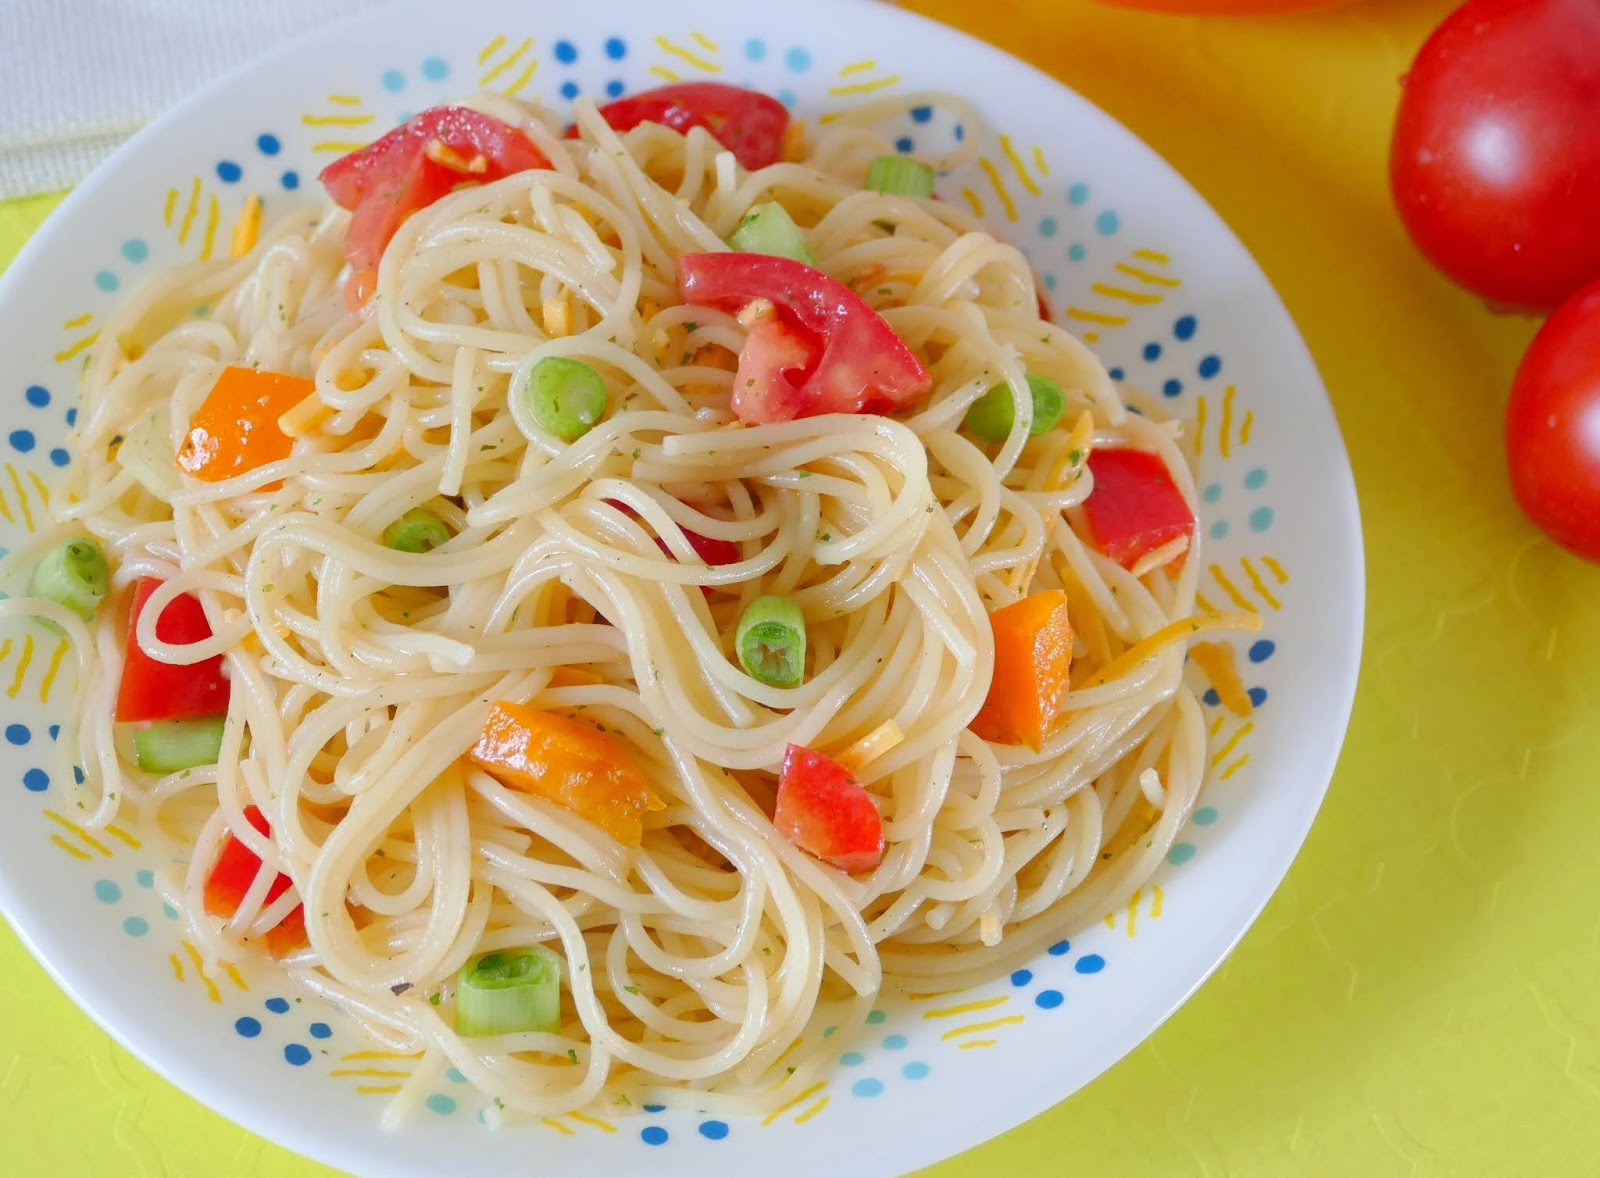 This simple pasta salad is great for any spring or summer BBQ, potluck, meal or picnic! The ranch adds delicious flavor to the pasta, tomatoes, green onions and bell pepper. Plus there's no mayo which makes it versatile and easy to customize!